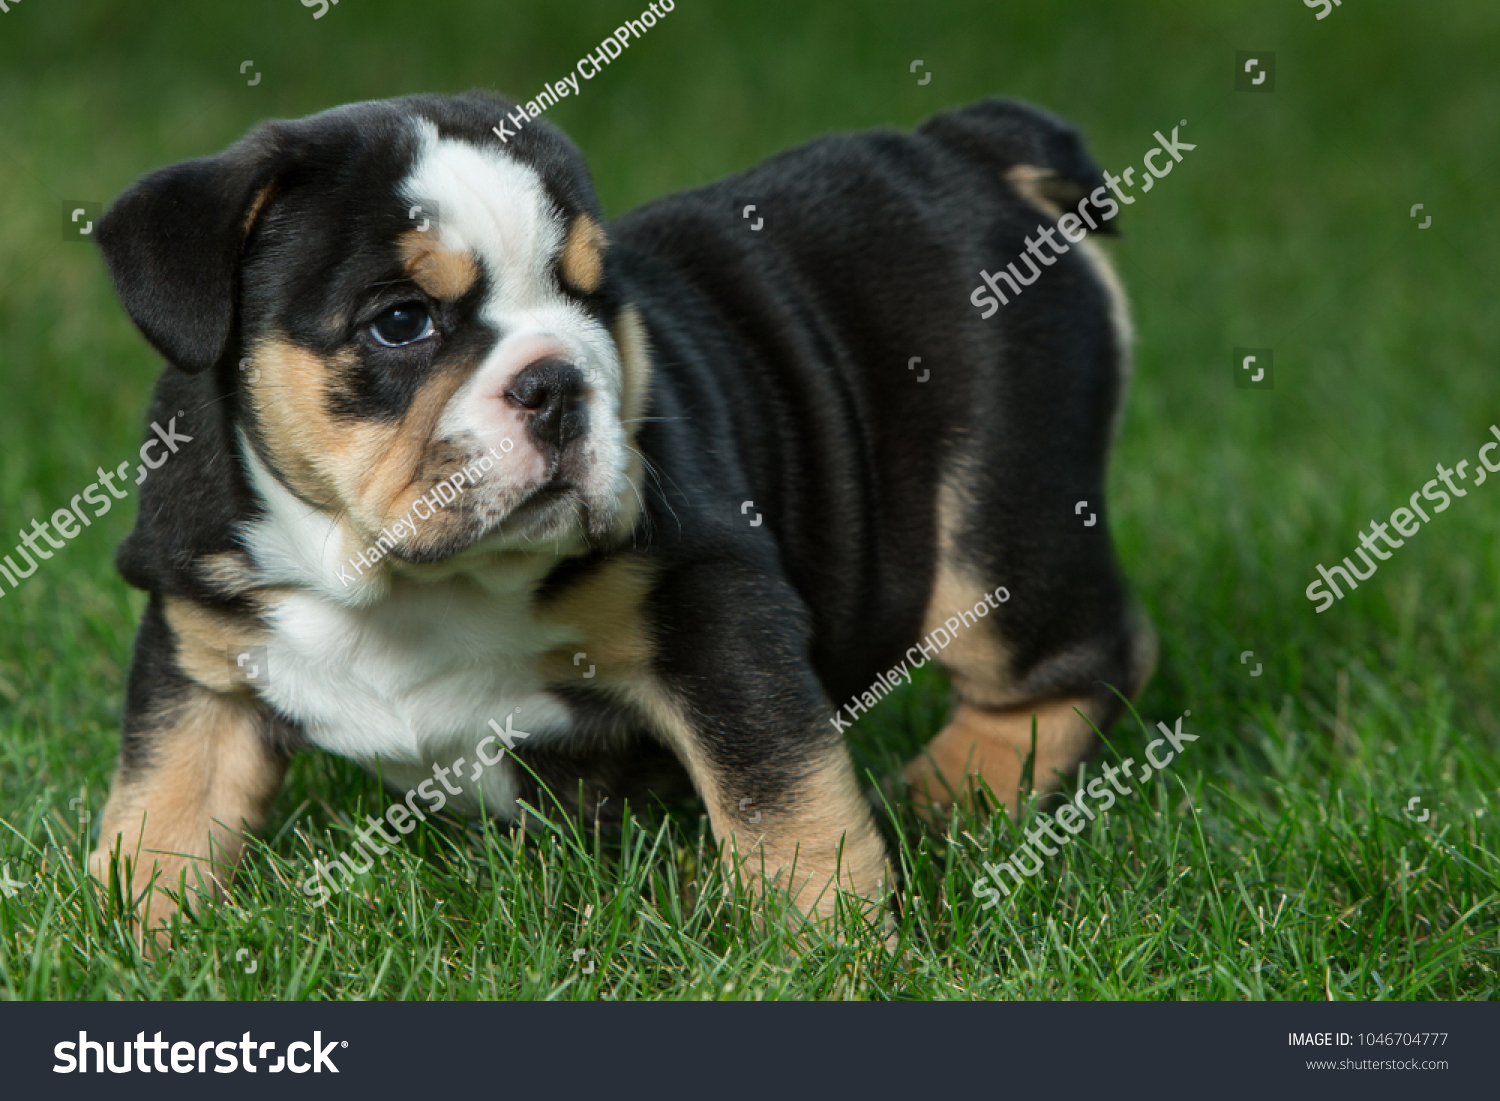 Cute Brown Black White English Bulldog Foto De Stock Editar Ahora 1046704777